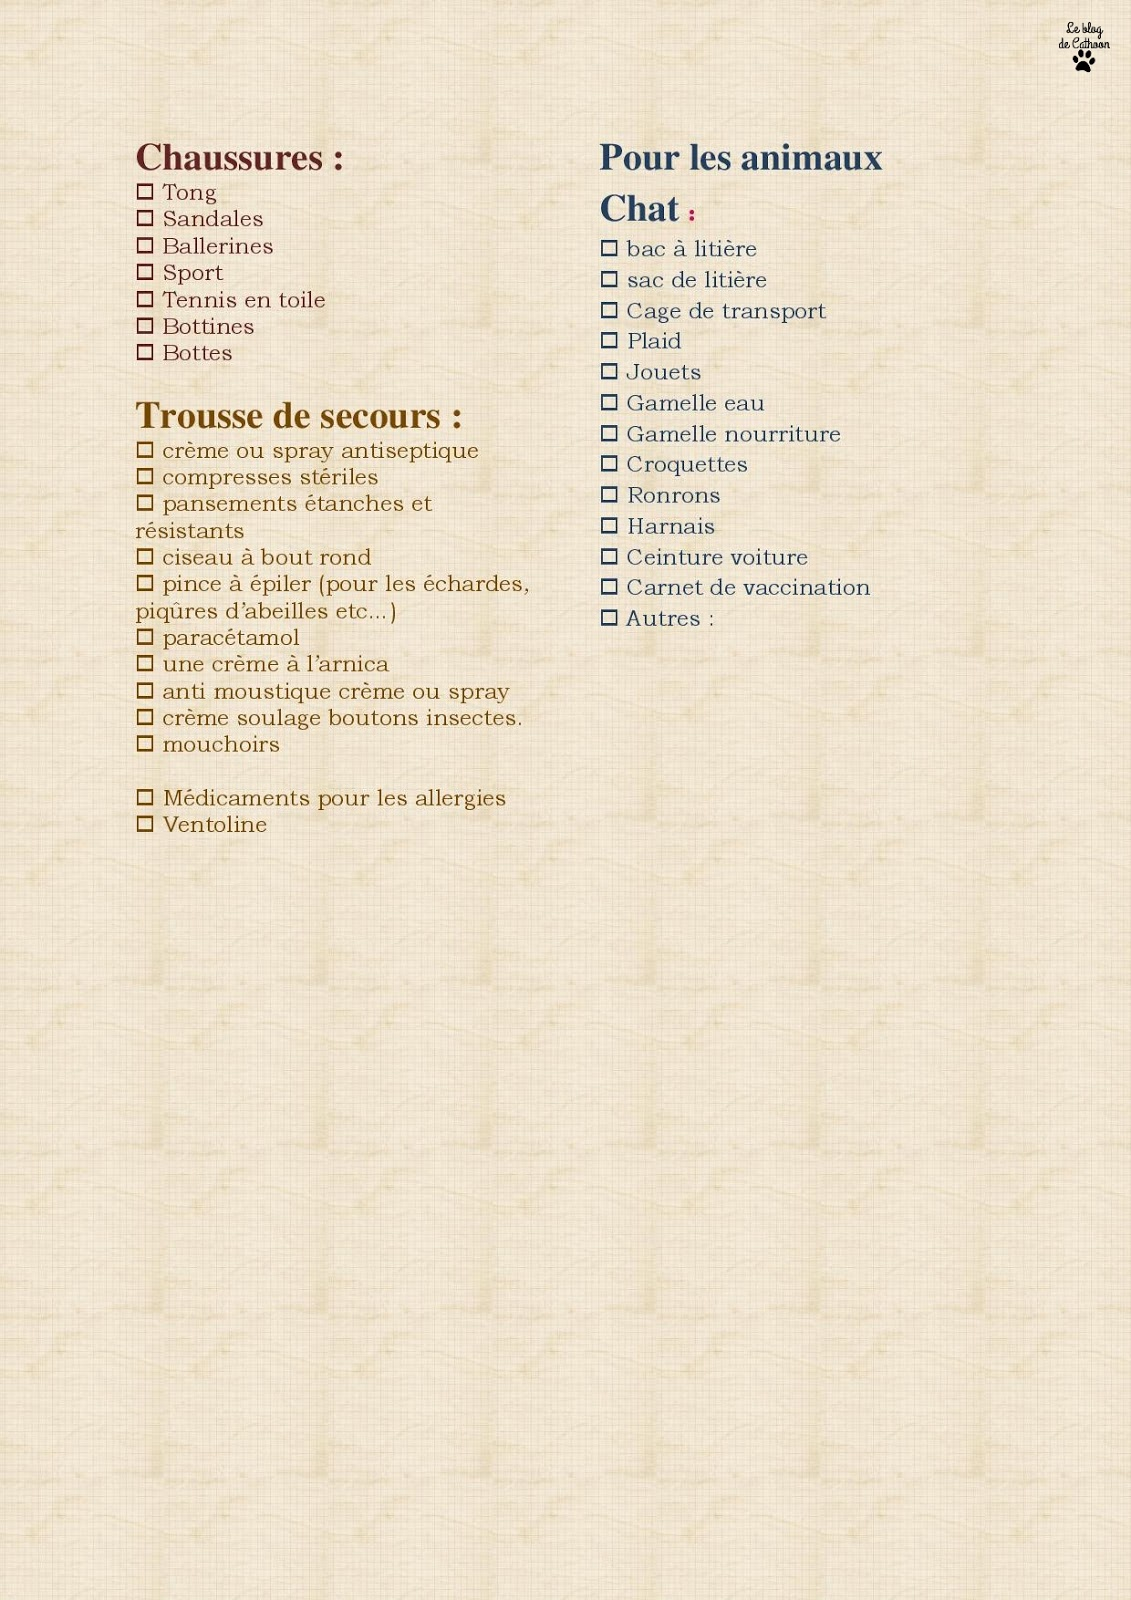 Check List vacances